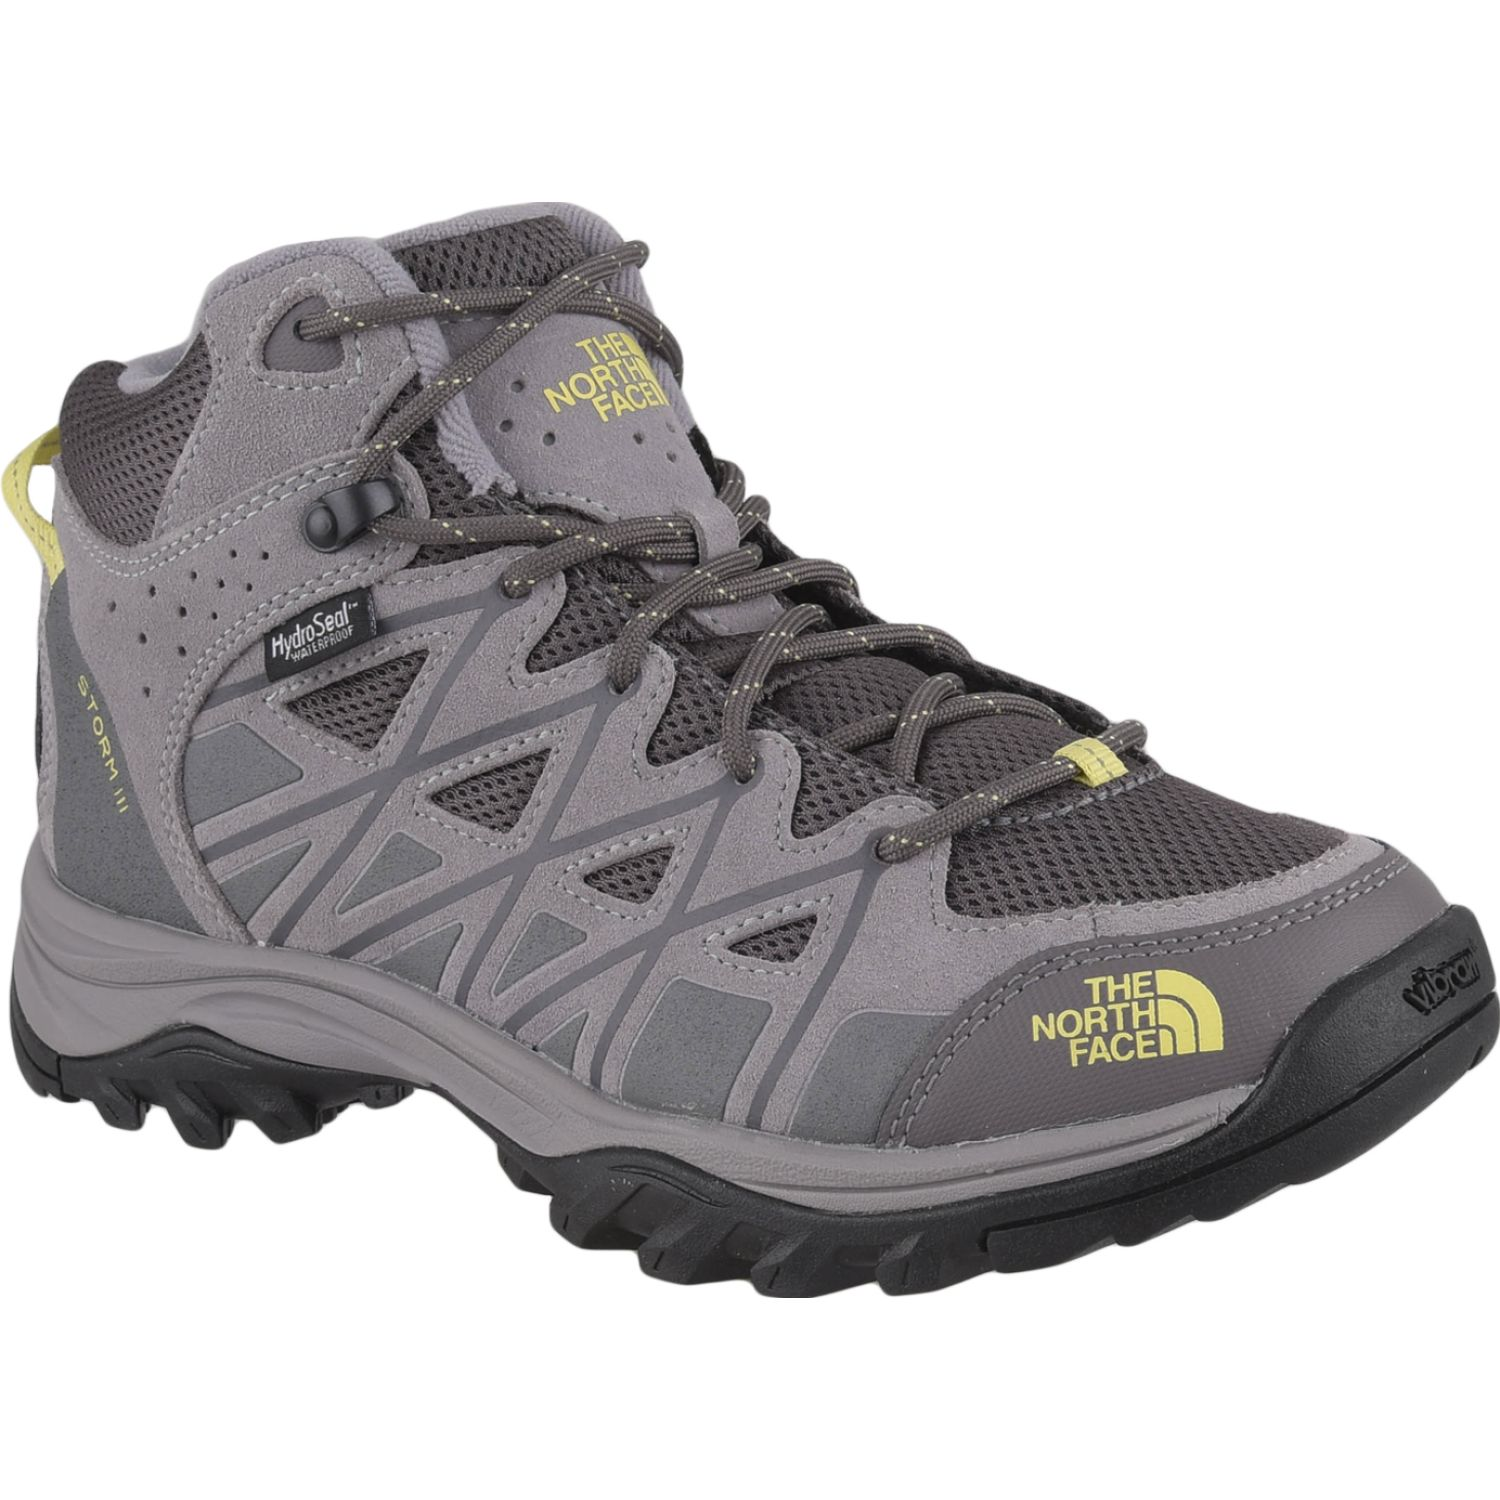 The North Face w storm iii mid wp Gris / amarillo Calzado hiking